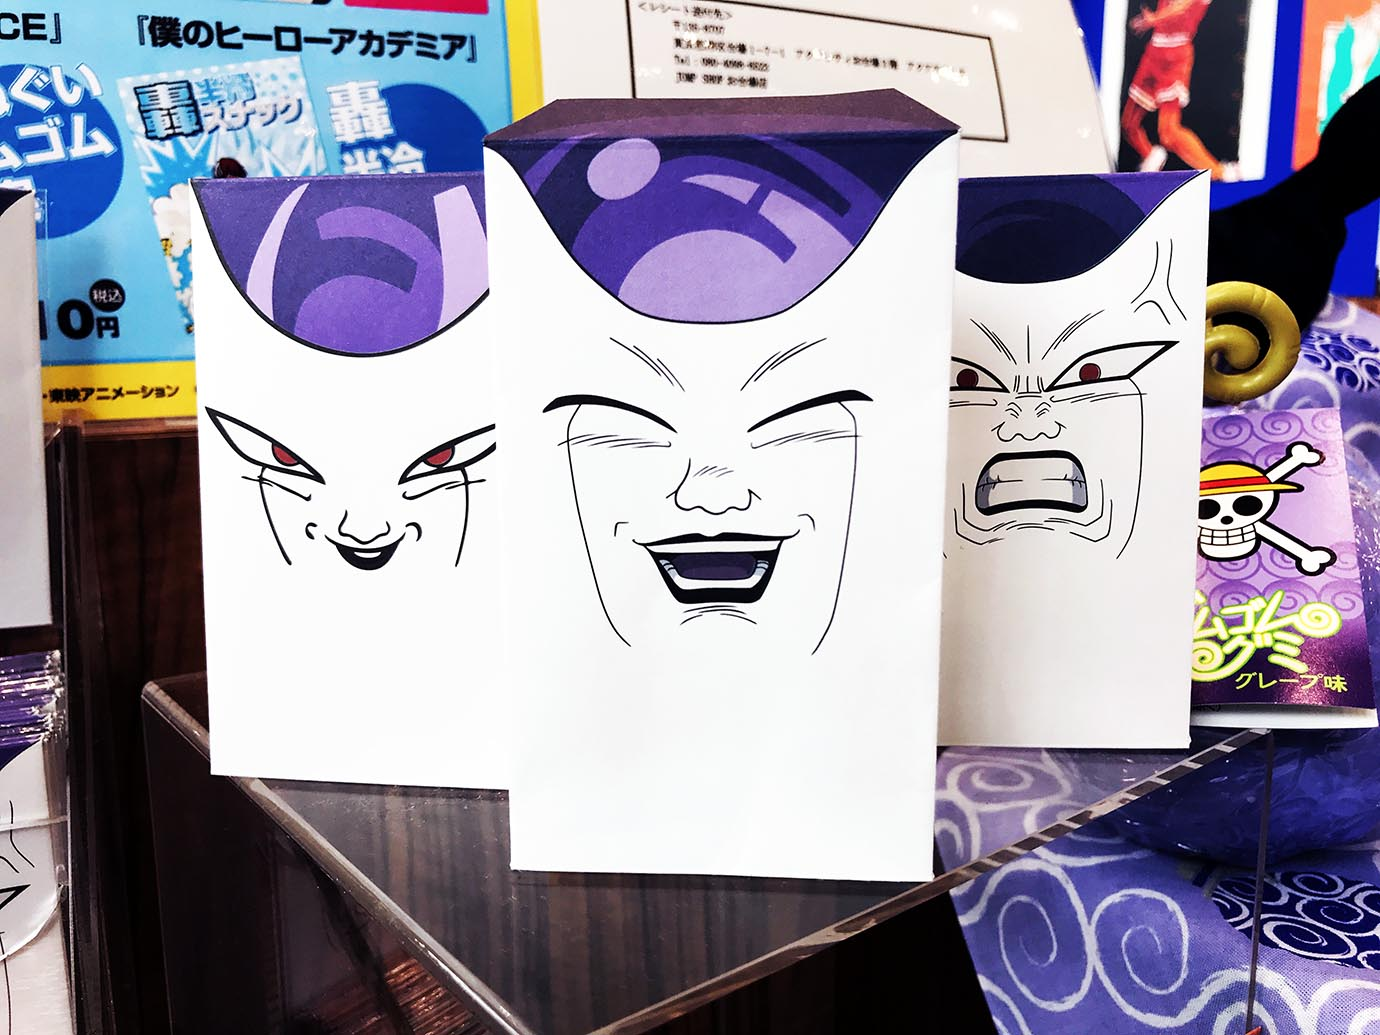 daiefu-of-freeza2